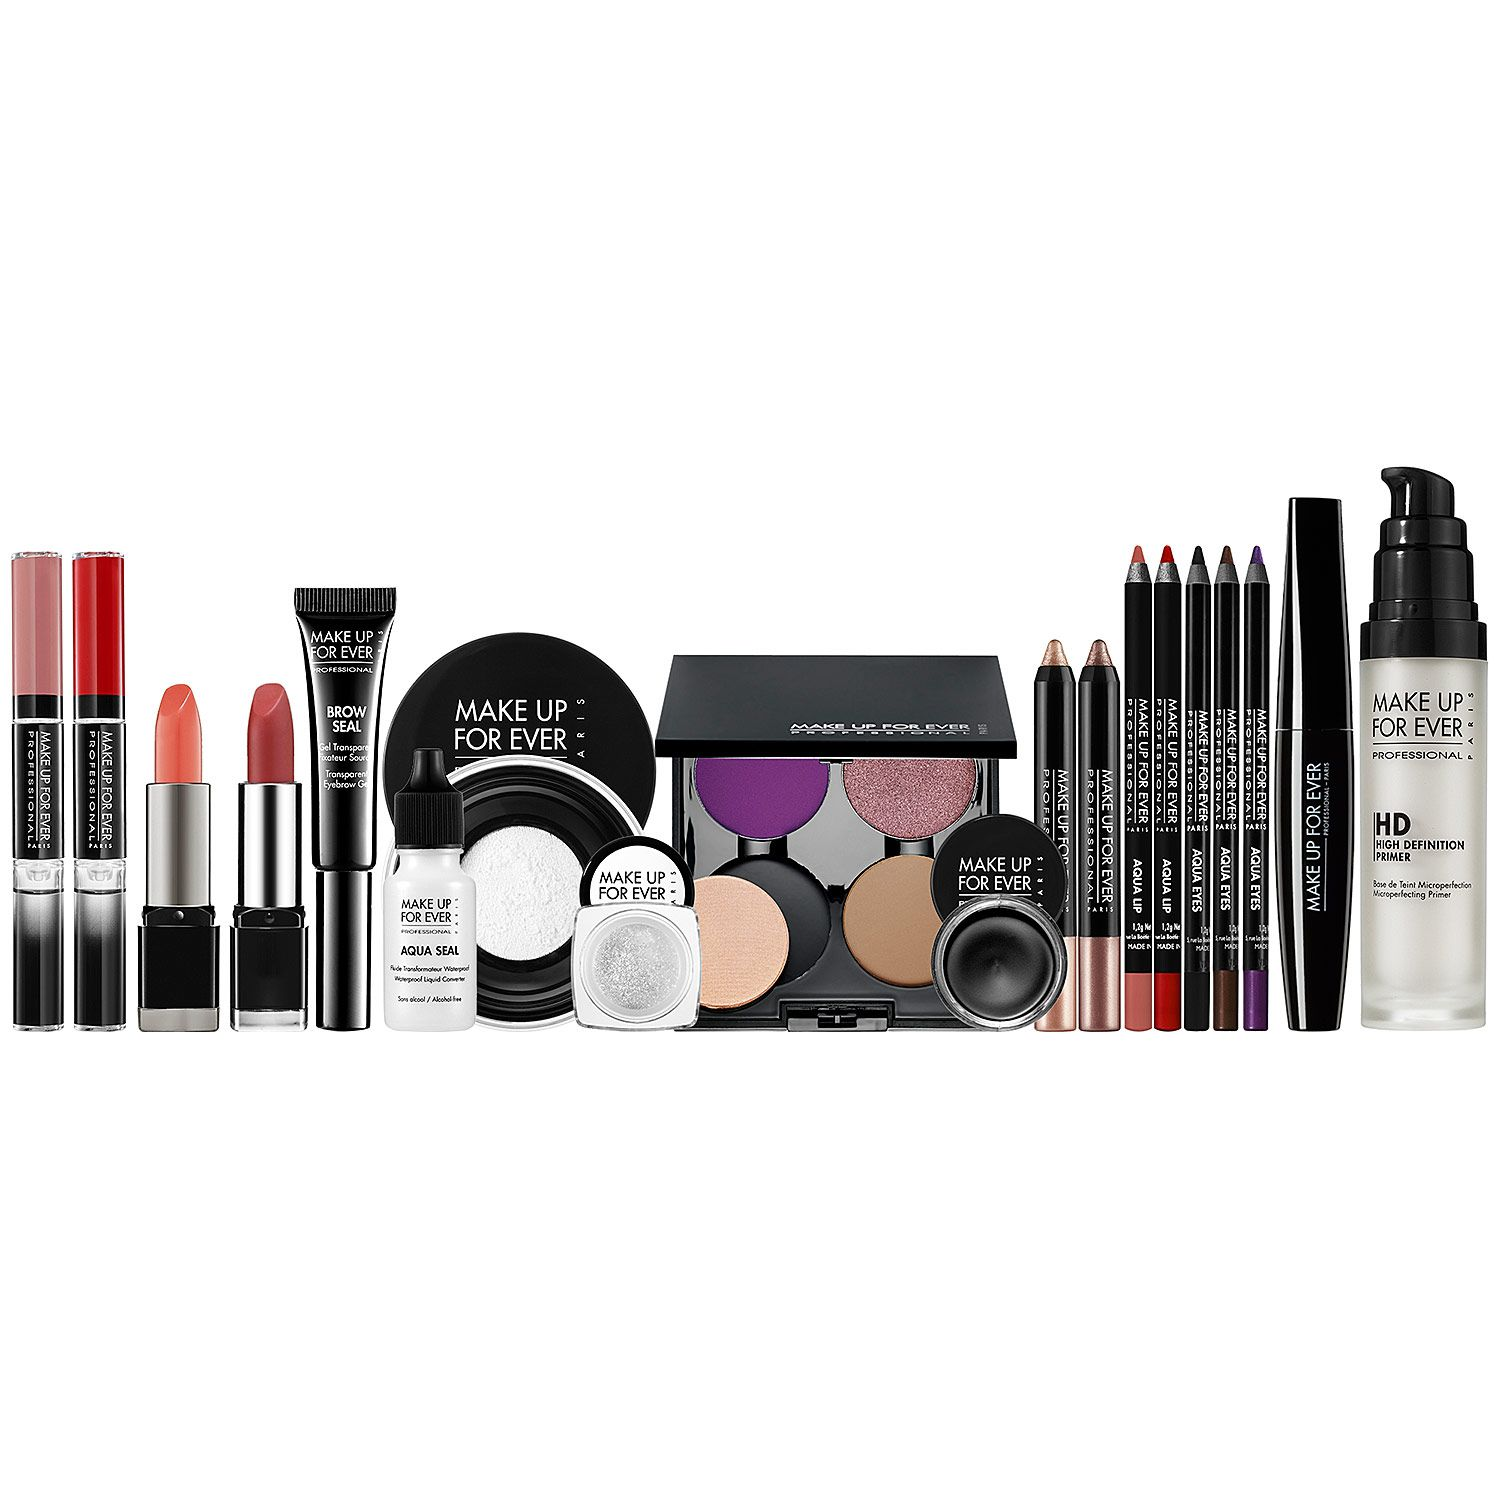 Makeup Artist Picks MAKE UP FOR EVER Sephora Sephora